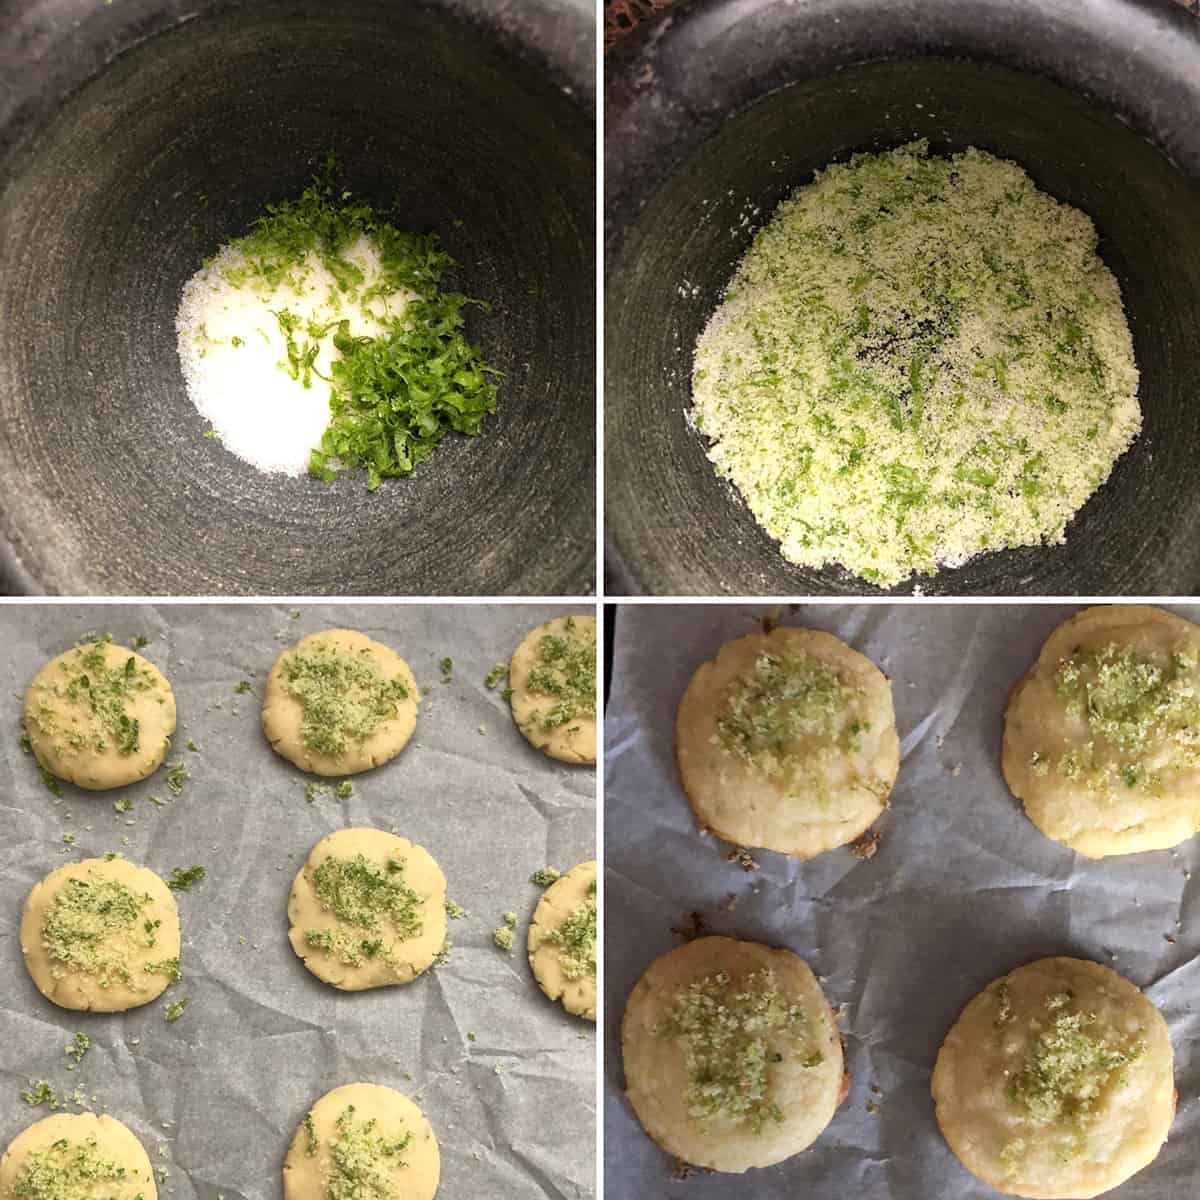 Mortar with sugar and lime zest pounded into coarse ground mixture and cookies topped with lime sugar